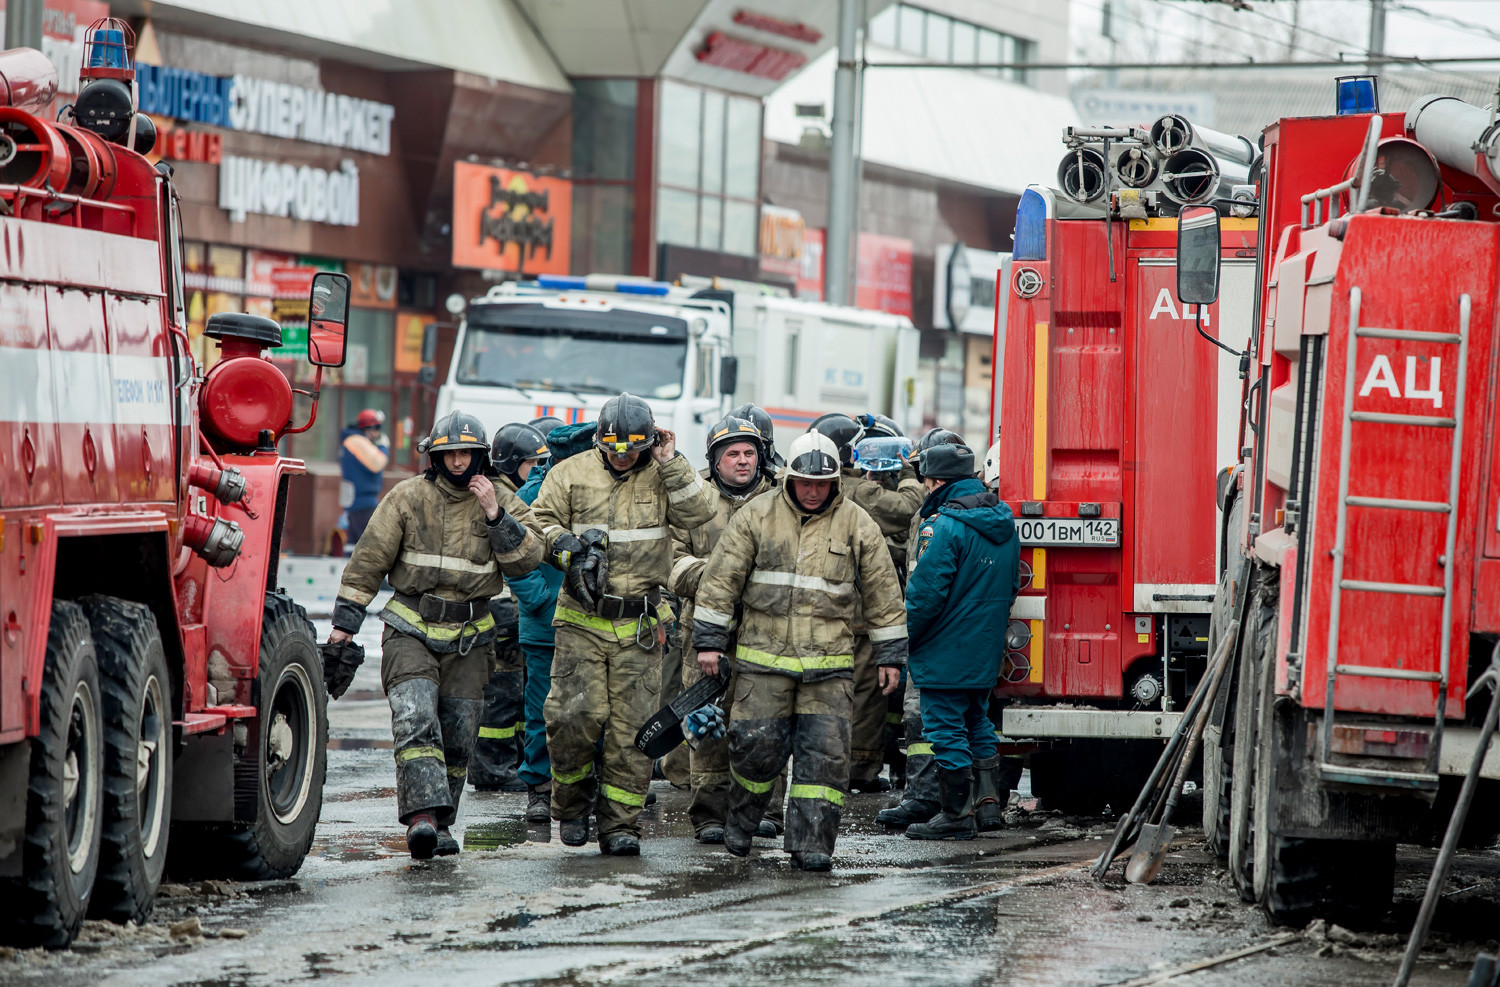 A group of firefighters walk near the scene of the shopping center after a fire on March 26, 2018.